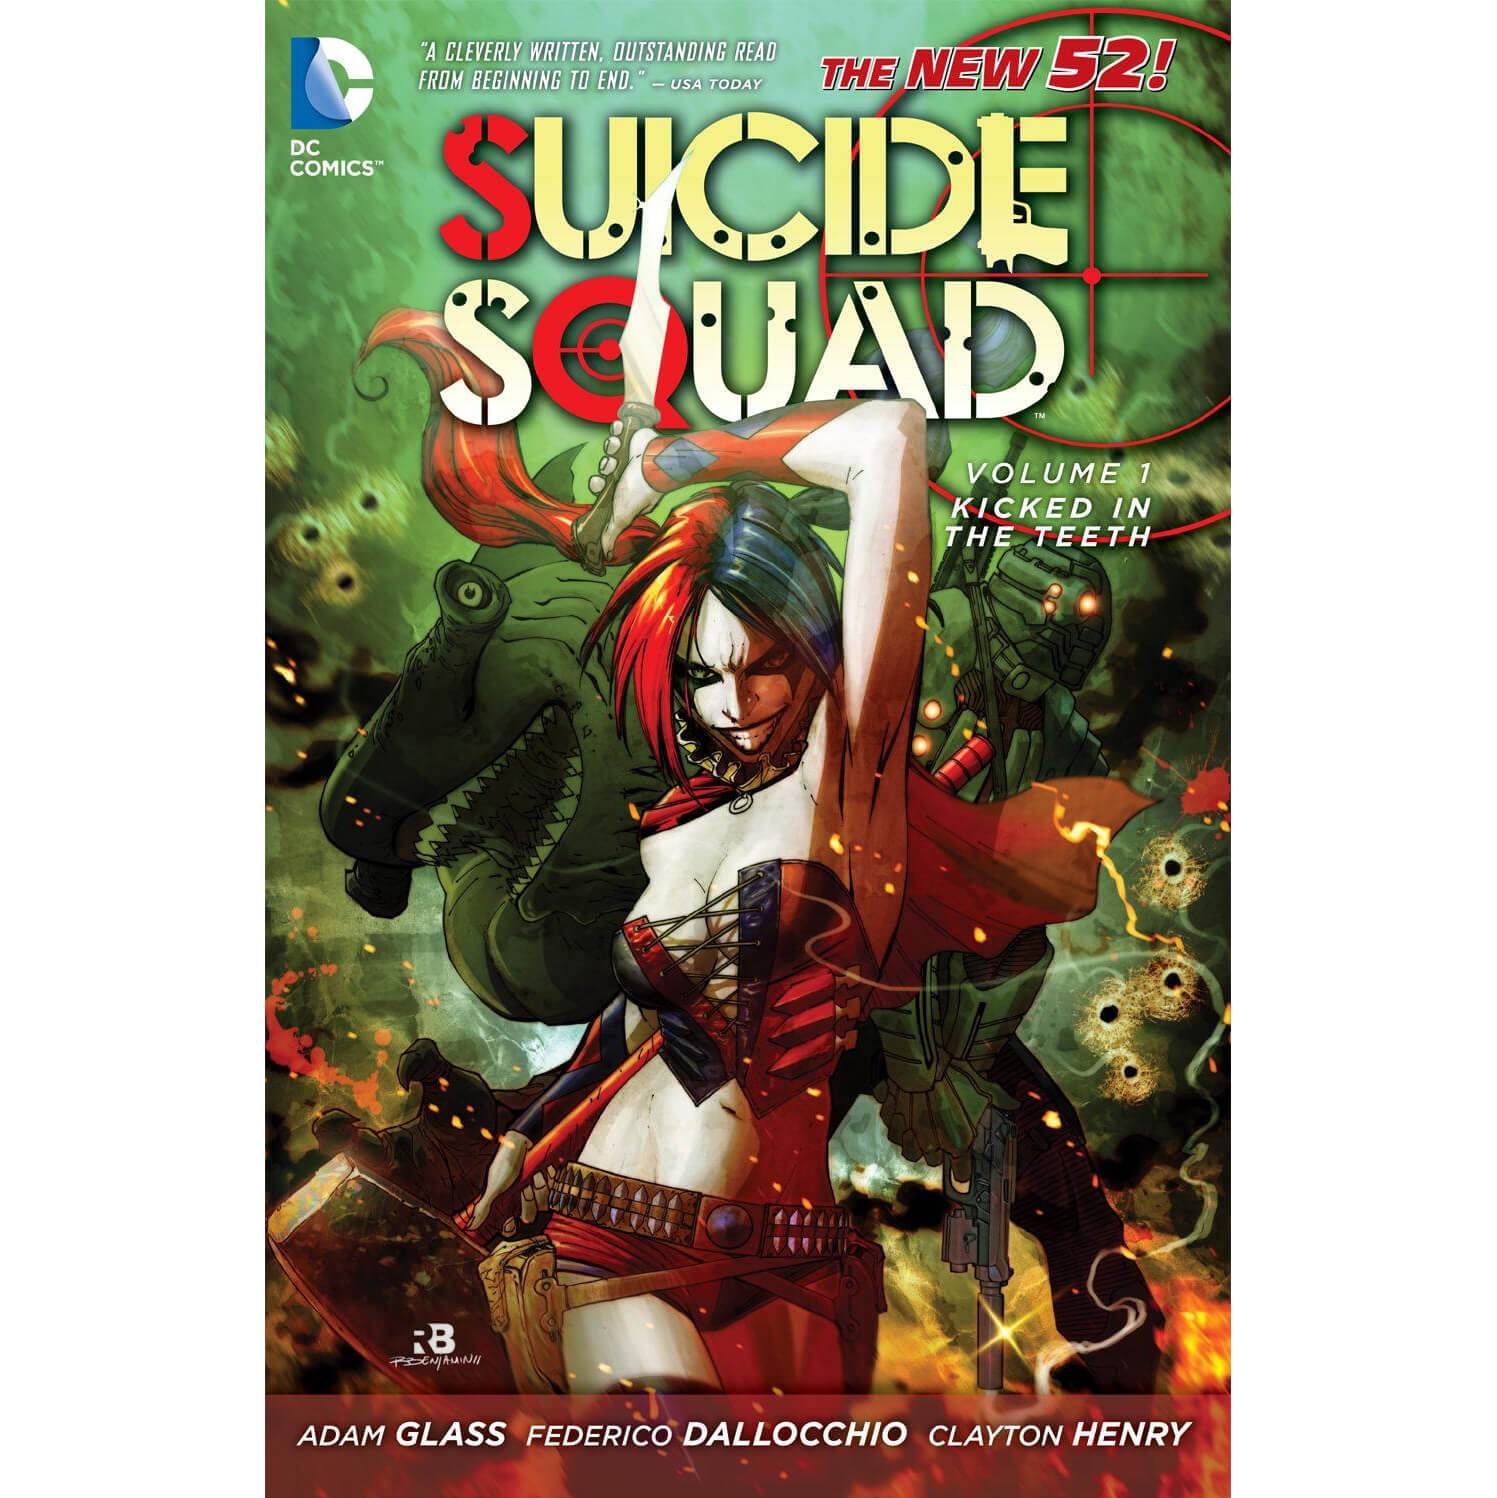 DC Comics Suicide Squad: Kicked in the Teeth - Volume 01 (The New 52) Paperback Graphic Novel